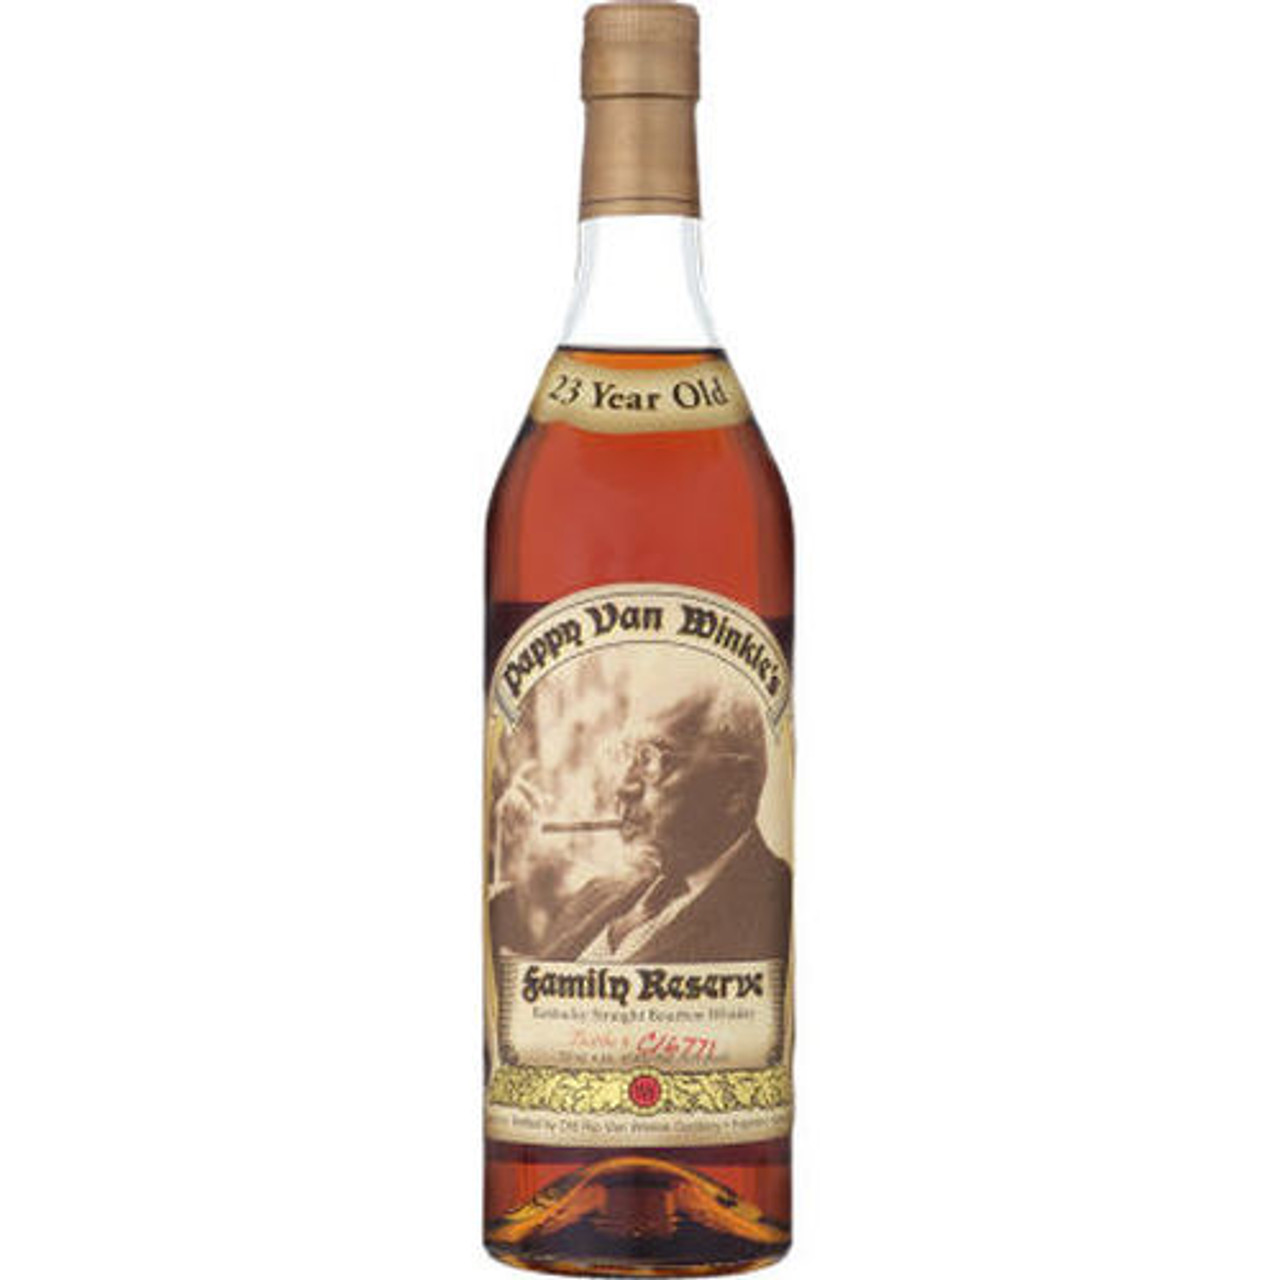 Many aspects of Pappy Van Winkle's Family Reserve 23 Year Bourbon are dark: dark fruits, dark spices, espresso roasted coffee, browned butter, charred oak, toasted nuts, and star anise are the standout flavors. It's a rare find, only released annually in small batches, making its availability shrouded in darkness too. If you're lucky enough to find some, caramel will greet your senses while the finish leaves you reeling through the complex array of flavors until you go back for the next sip. Be sure to drink this bourbon whiskey neat so you can savor its uniqueness.